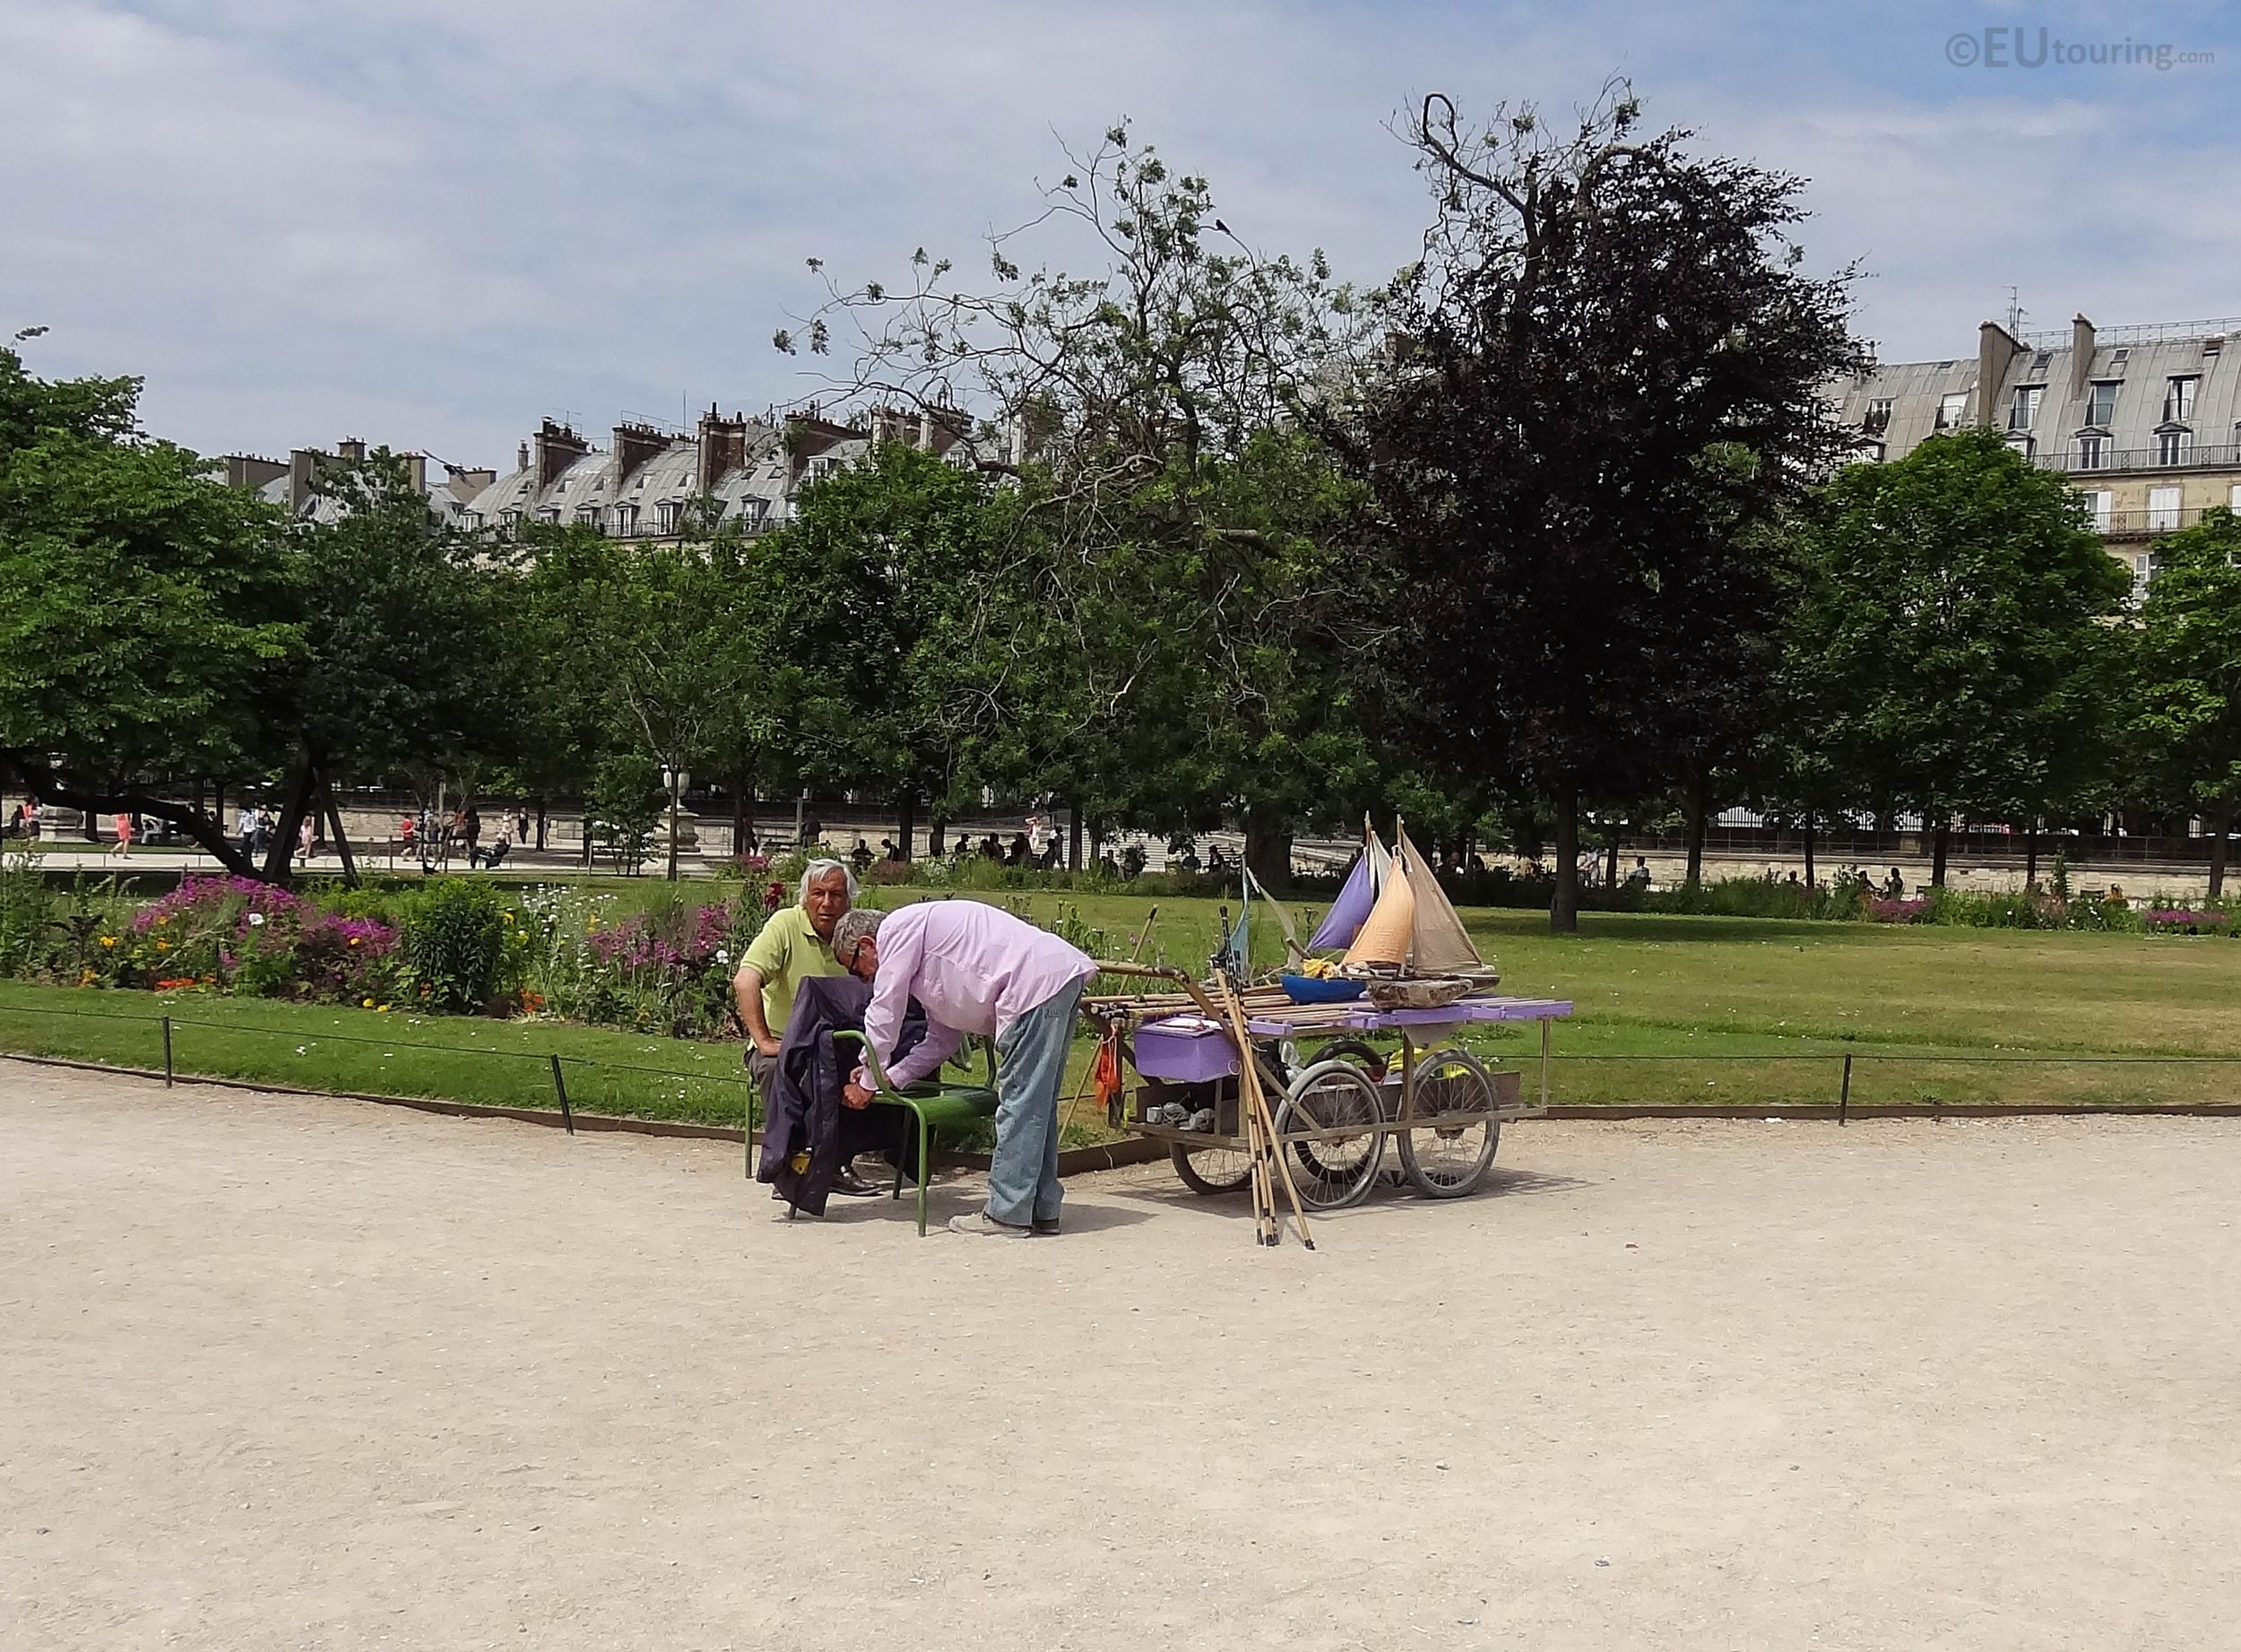 Map of attractions and photos inside Tuileries